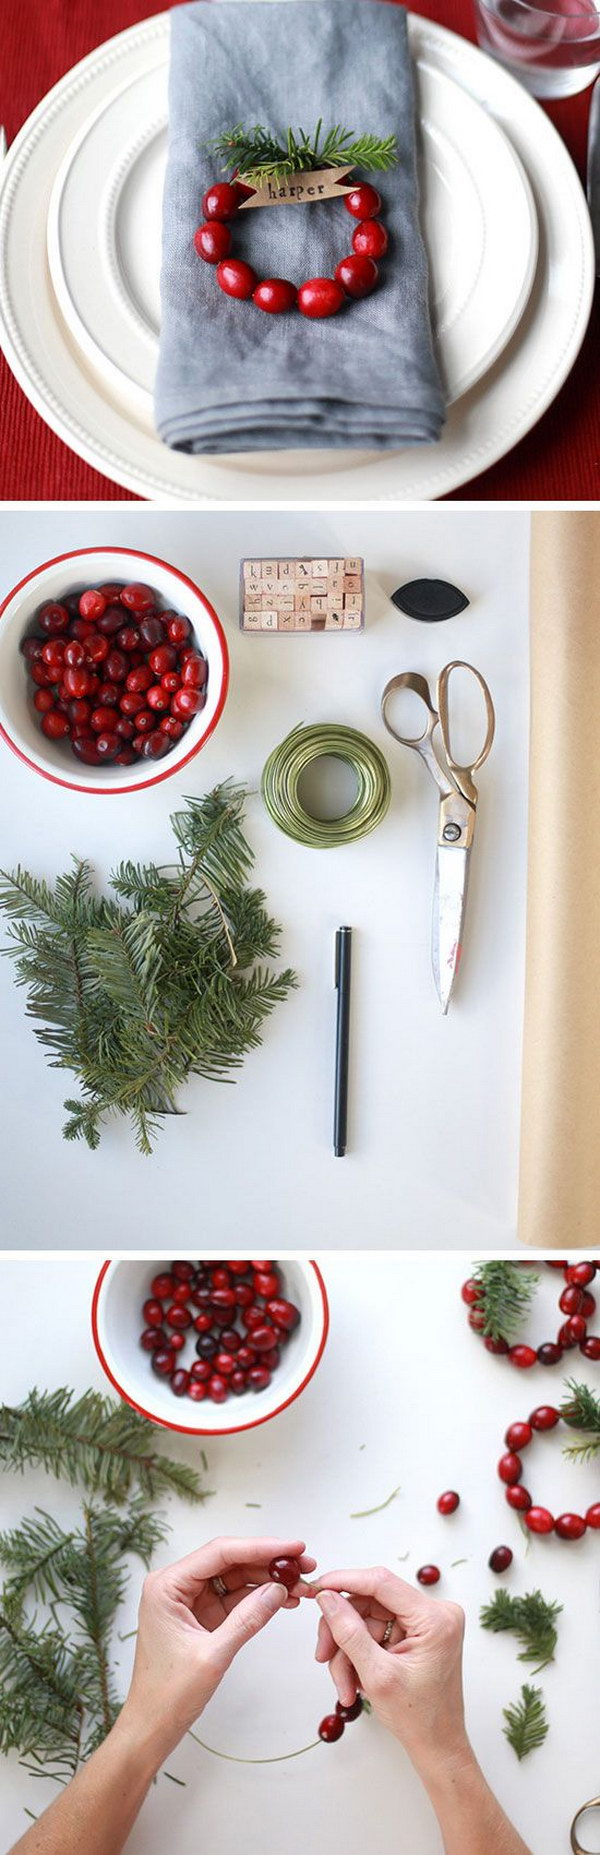 Festive Christmas Table Decoration Ideas and Tutorials - IdeaStand